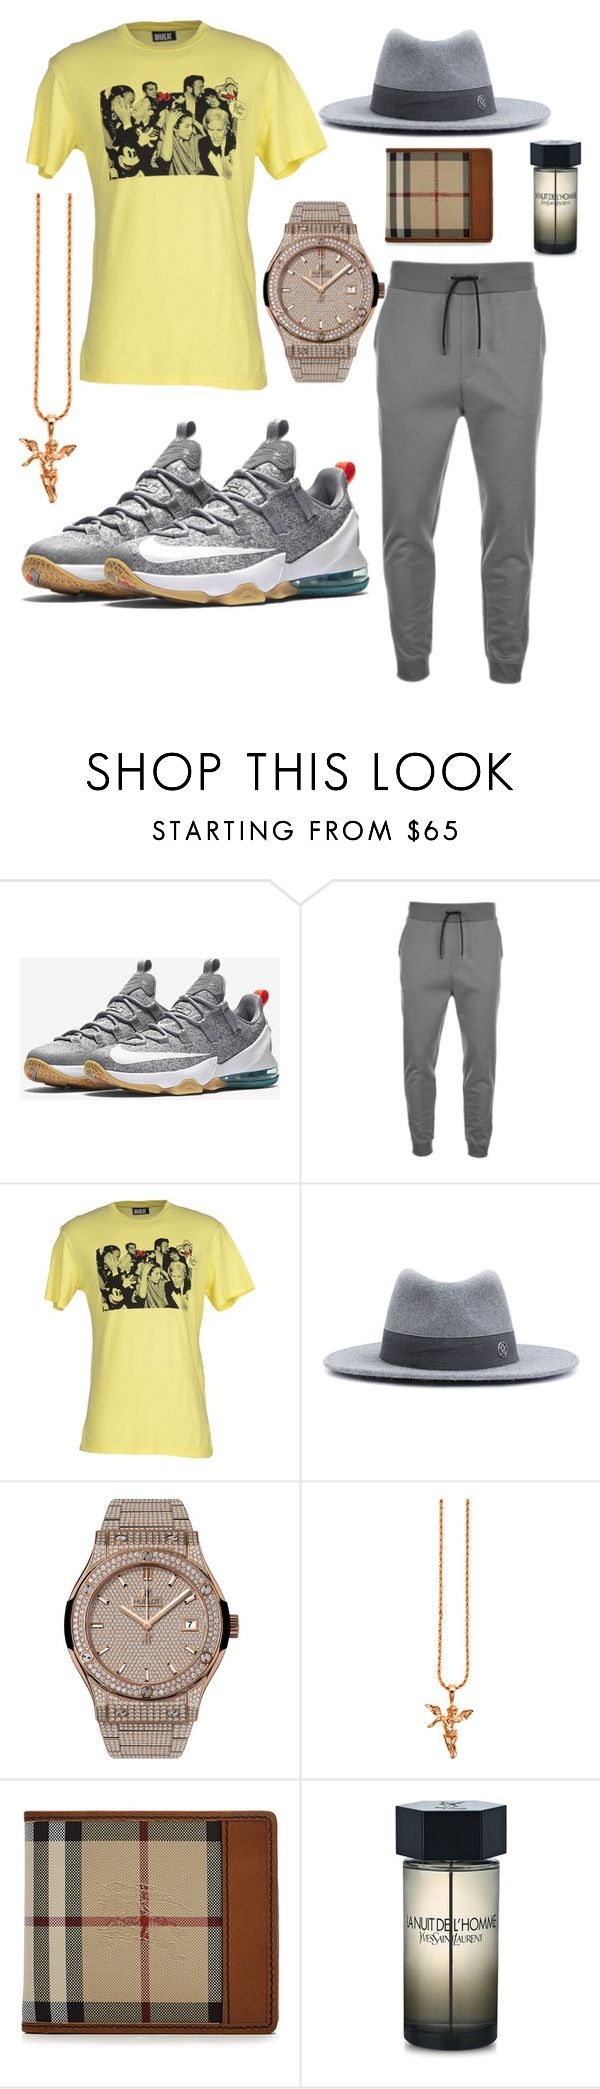 """""""Laid Back Flow"""" by michaelmartin714 ❤ liked on Polyvore featuring NIKE, HUGO, Bulk, Maison Michel, Hublot, Burberry, Yves Saint Laurent, men's fashion and menswear"""